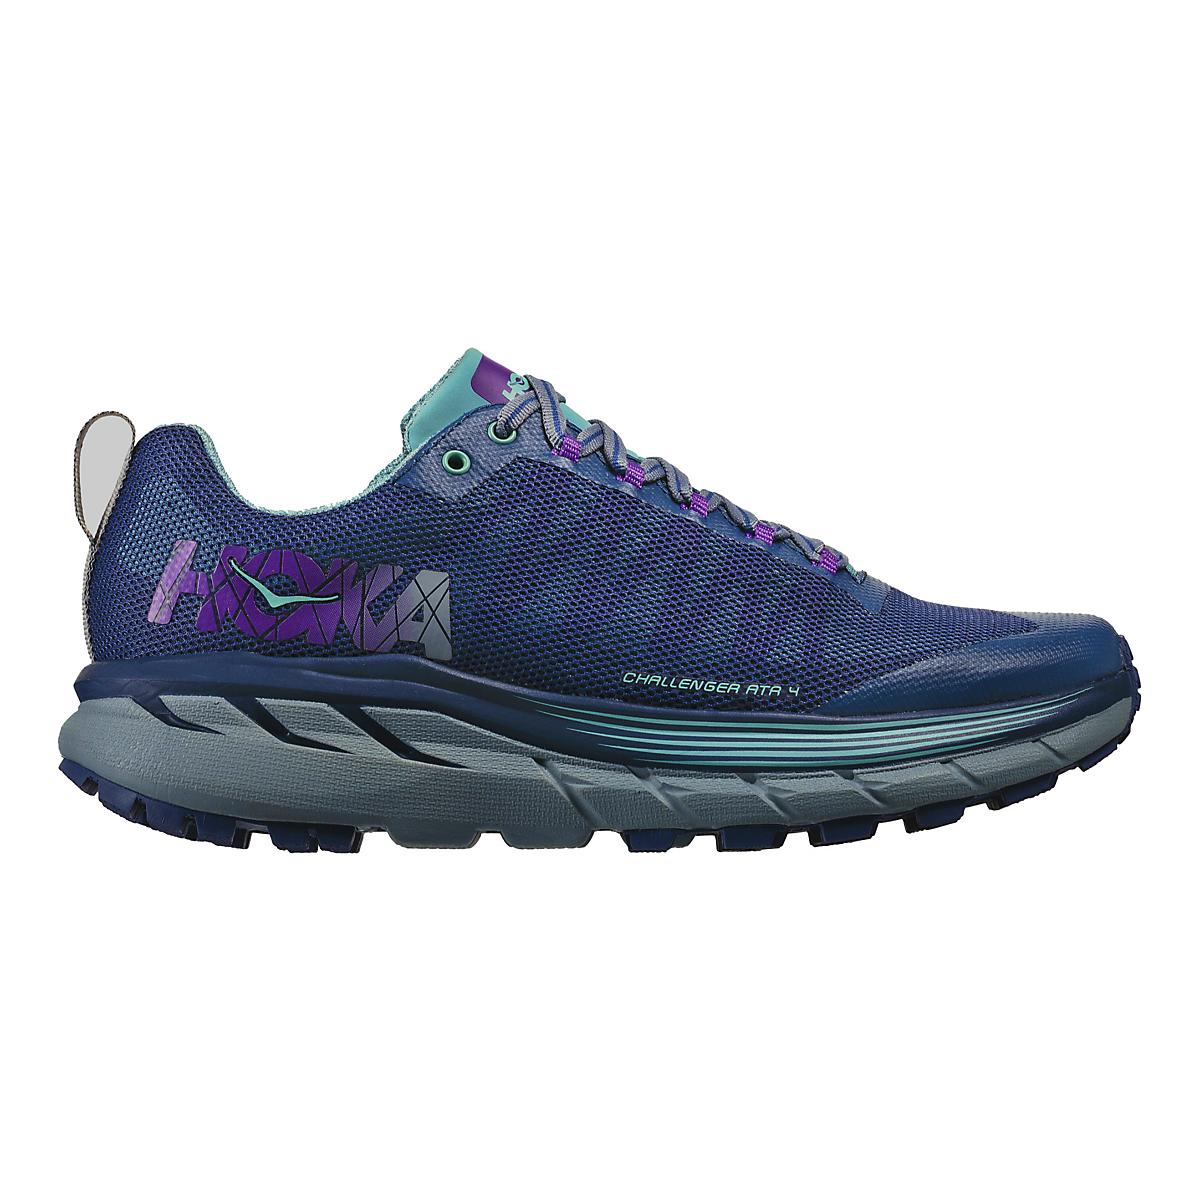 204b779c4a139 Hoka One One Challenger ATR 4 for Women from Road Runner Sports